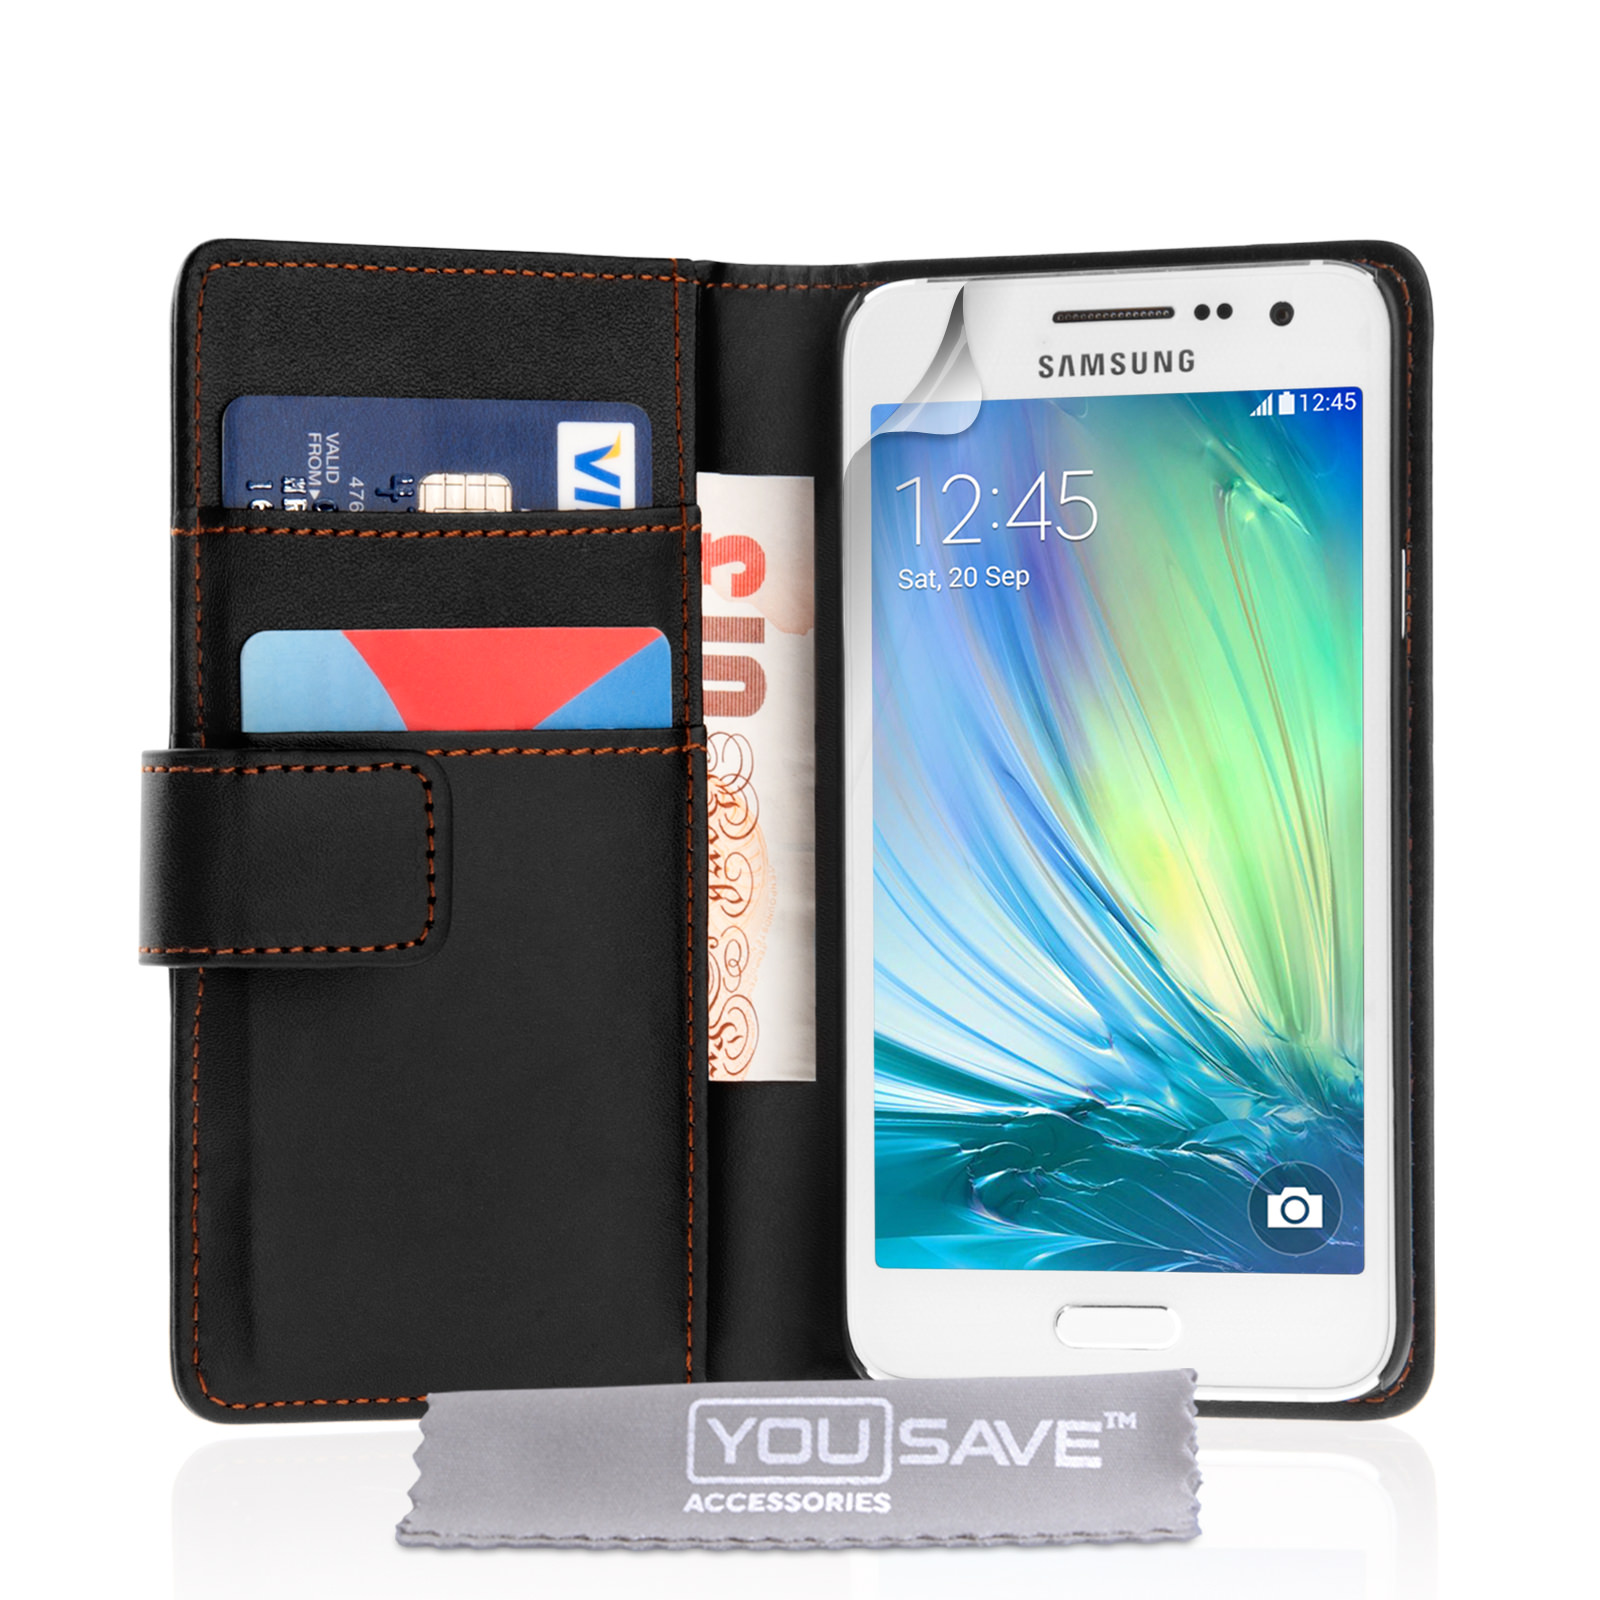 Yousave Accessories Samsung Galaxy A3 (2016) Leather-Effect Wallet Case - Black